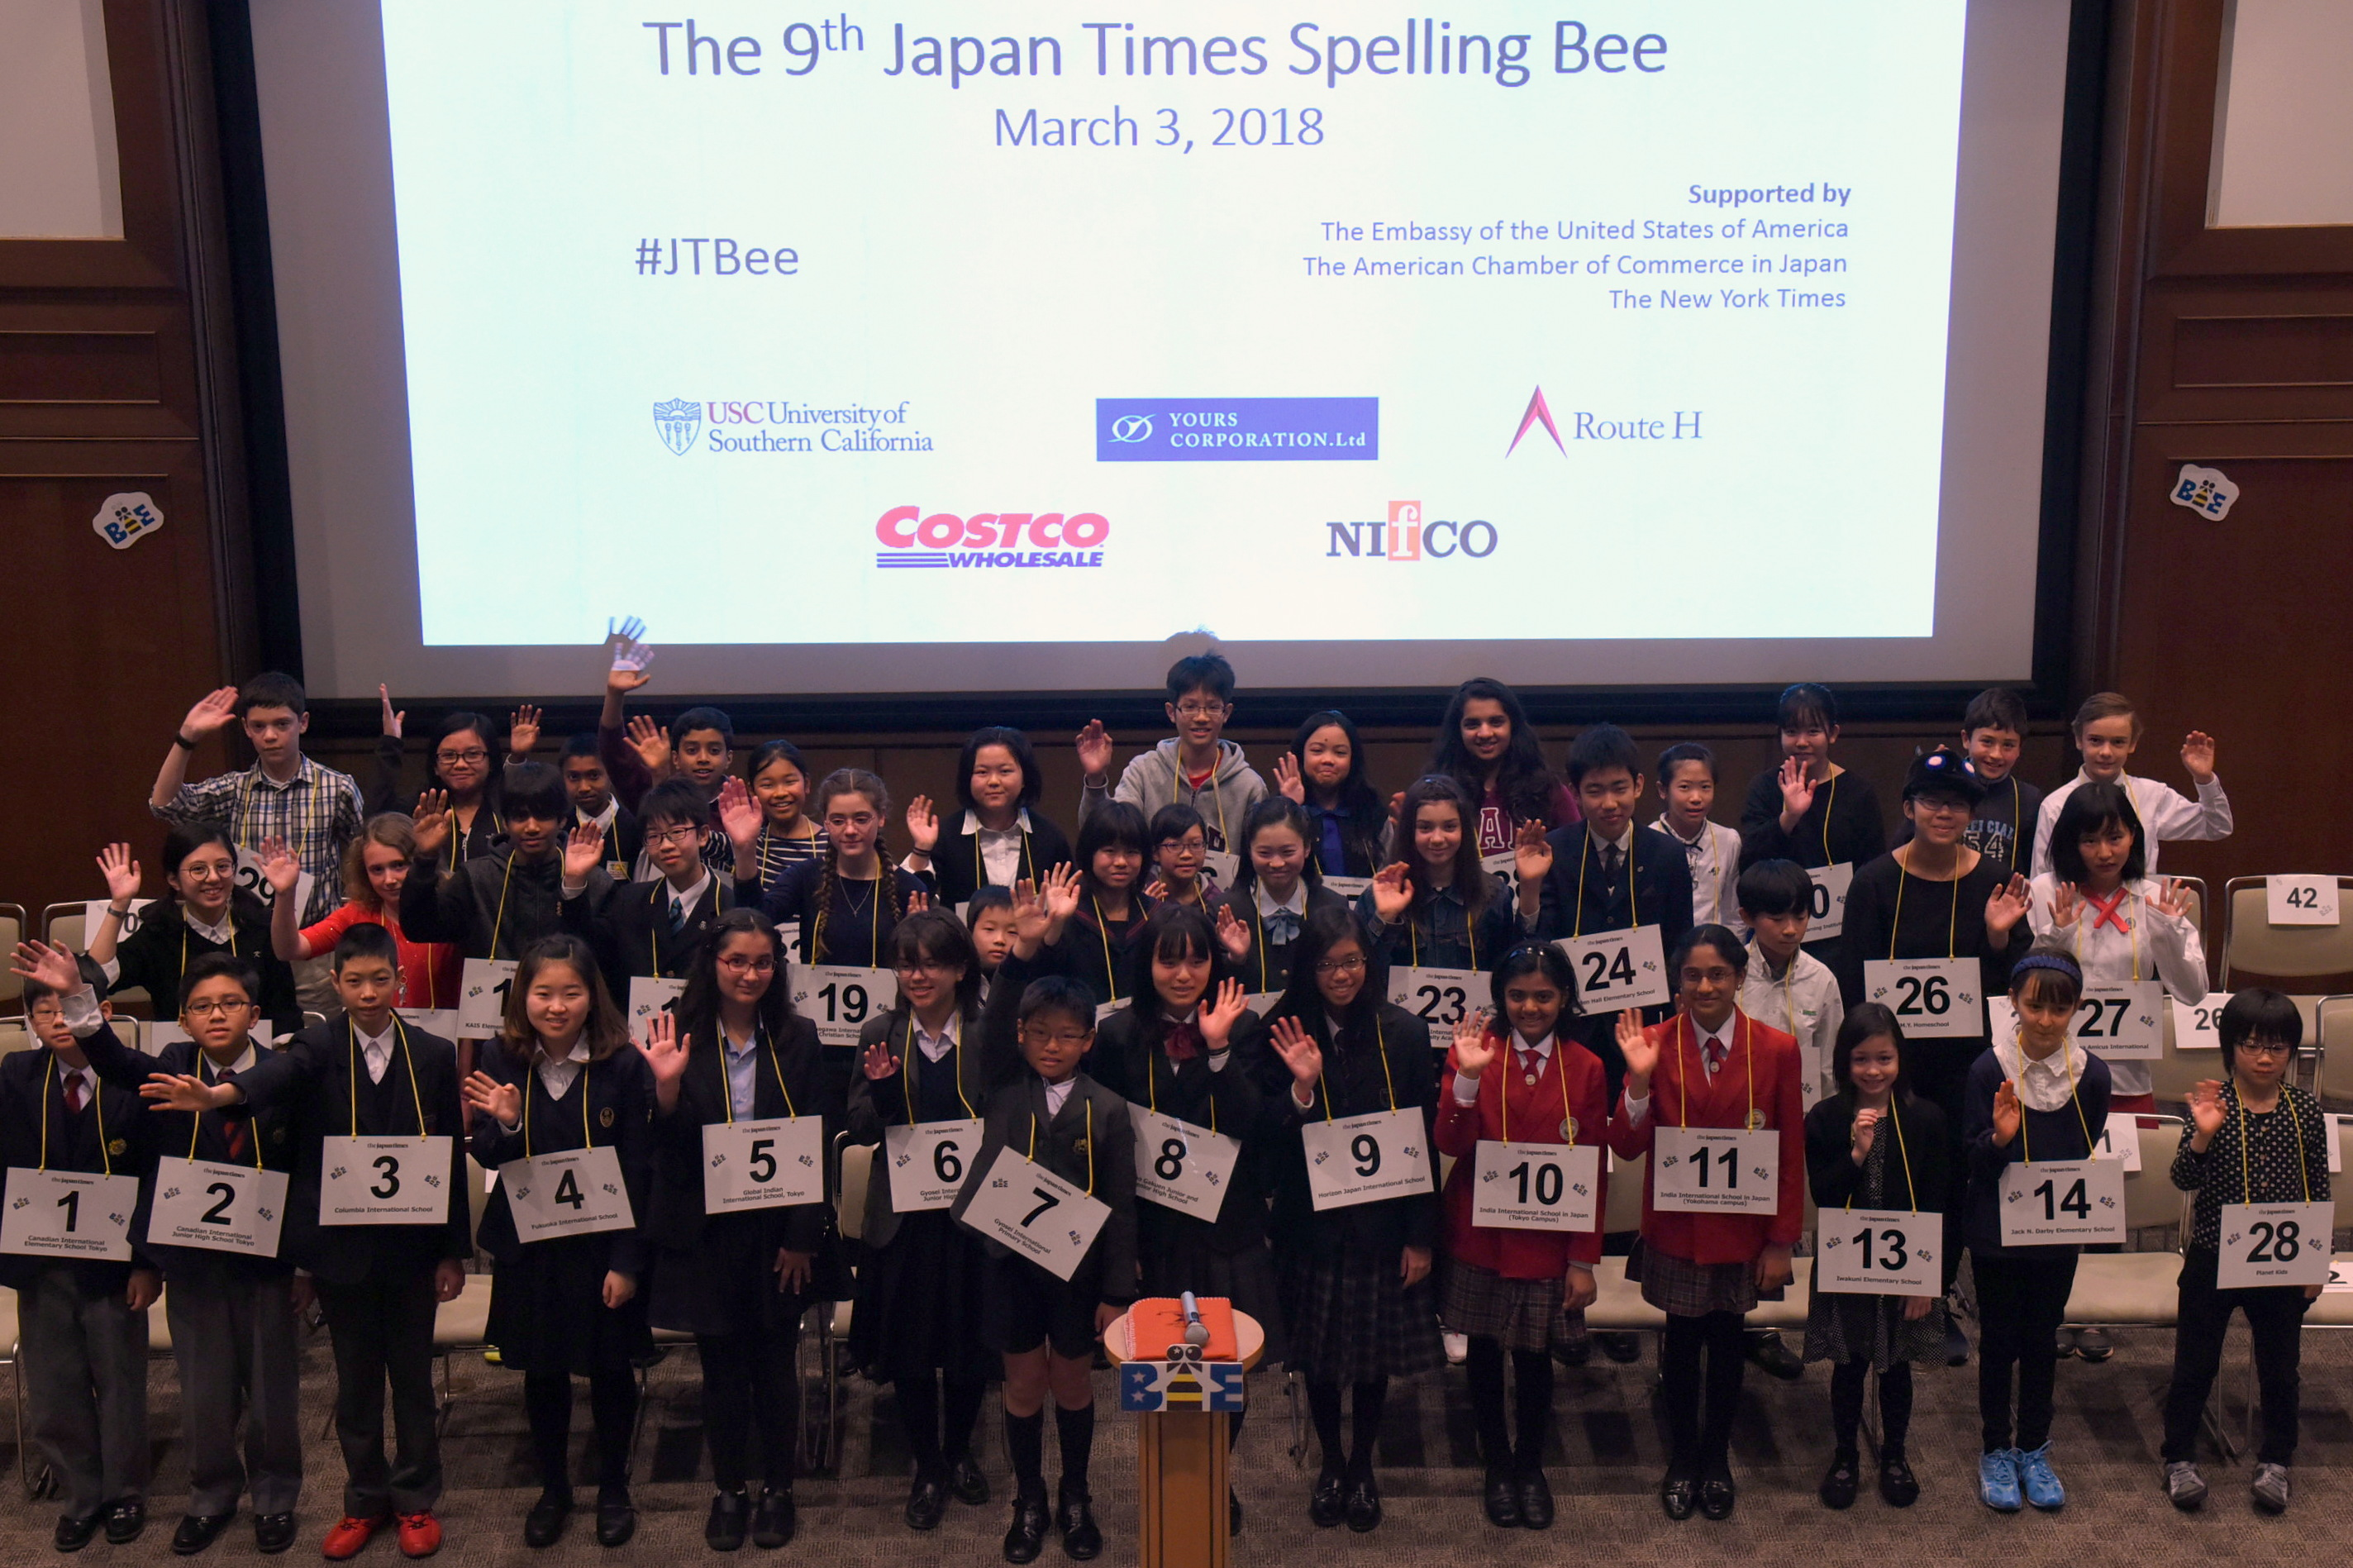 Participants gather for the 9th Japan Times Bee held in Tokyo on March 3, 2018. | SATOKO KAWASAKI